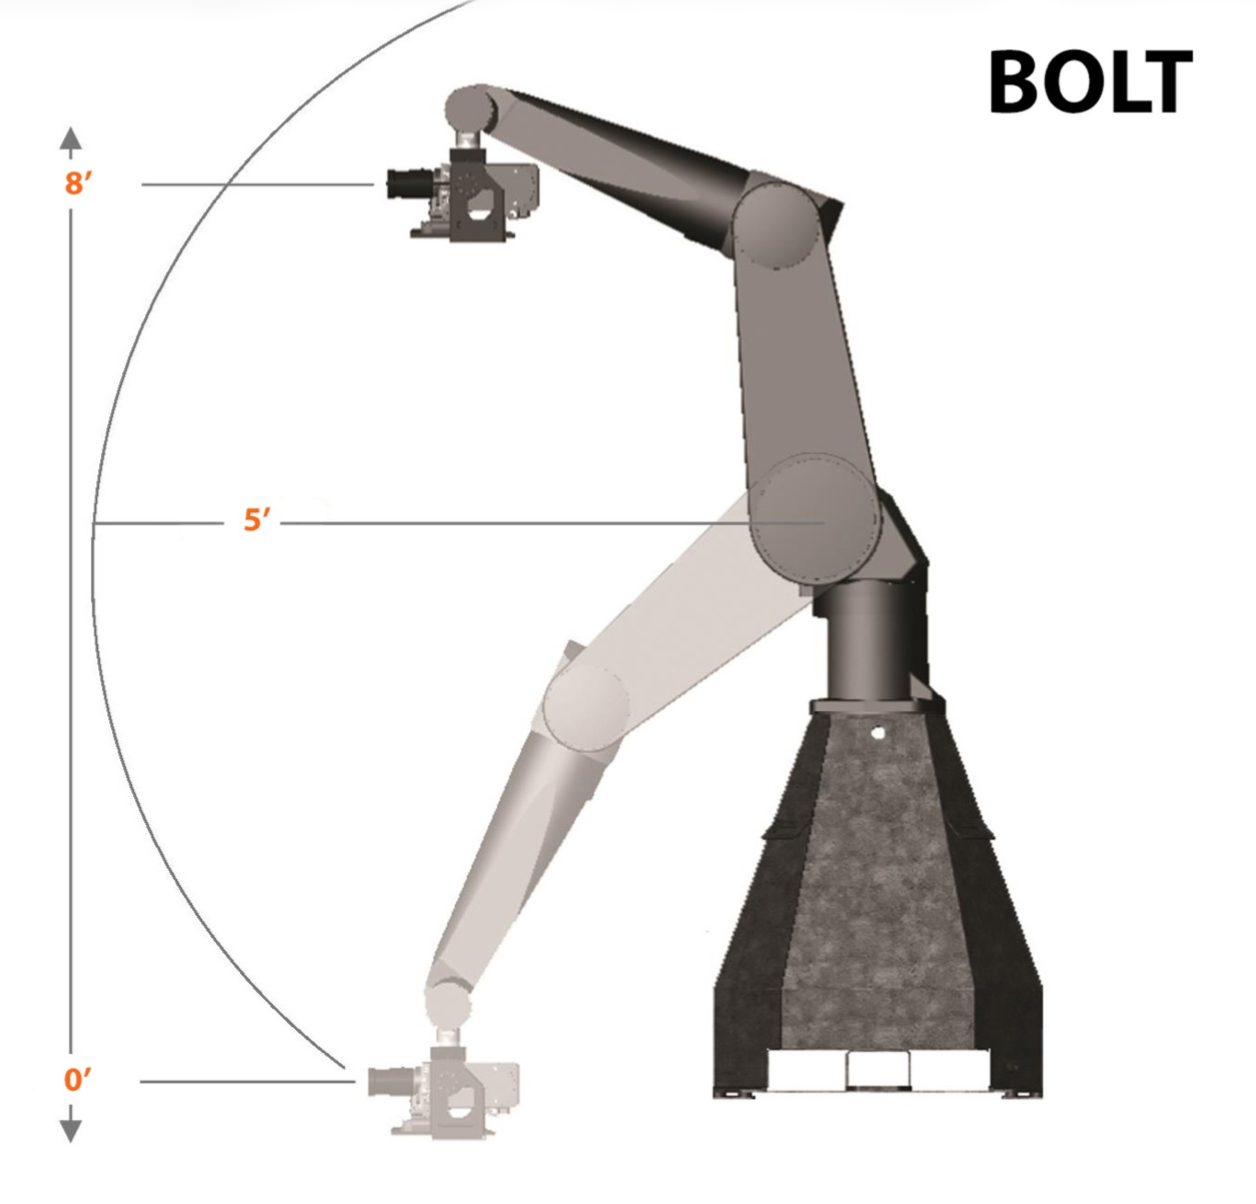 Bolt   High Speed Cinebot